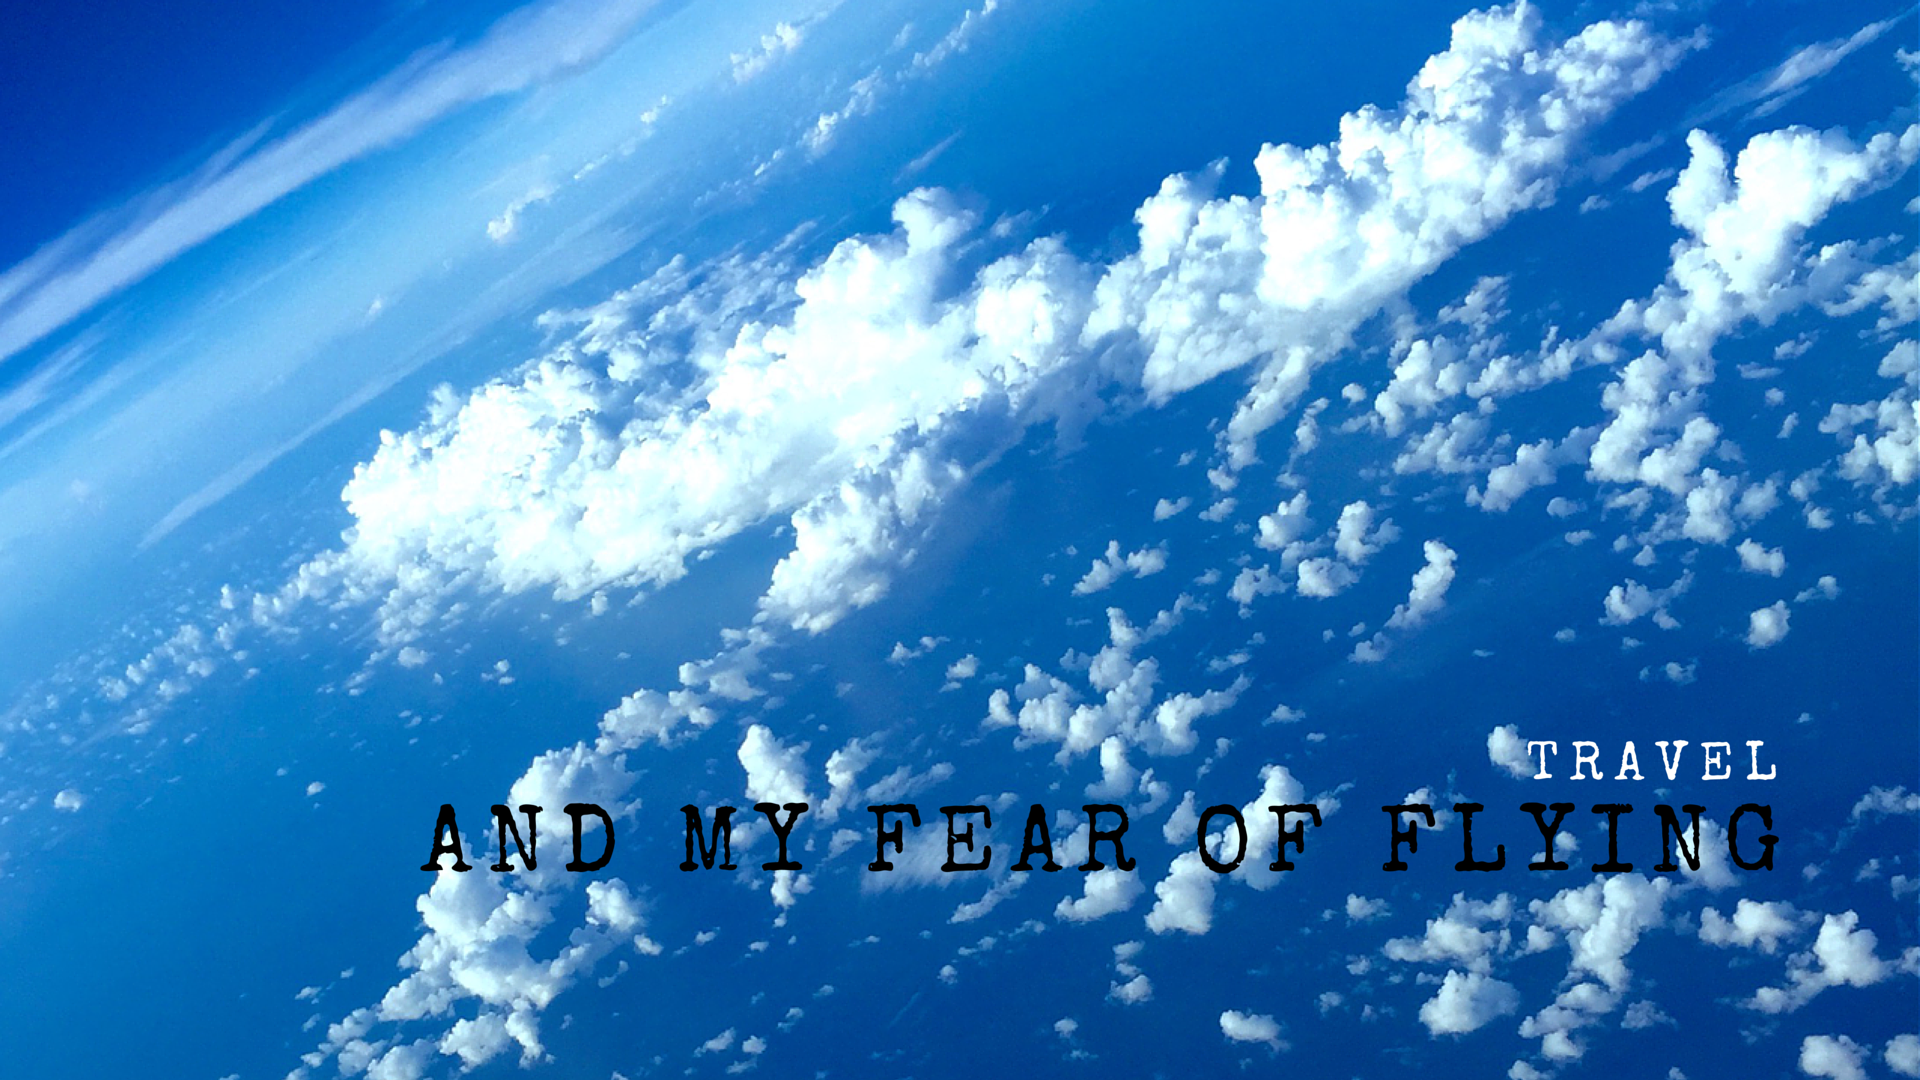 Travel and my fear of flying